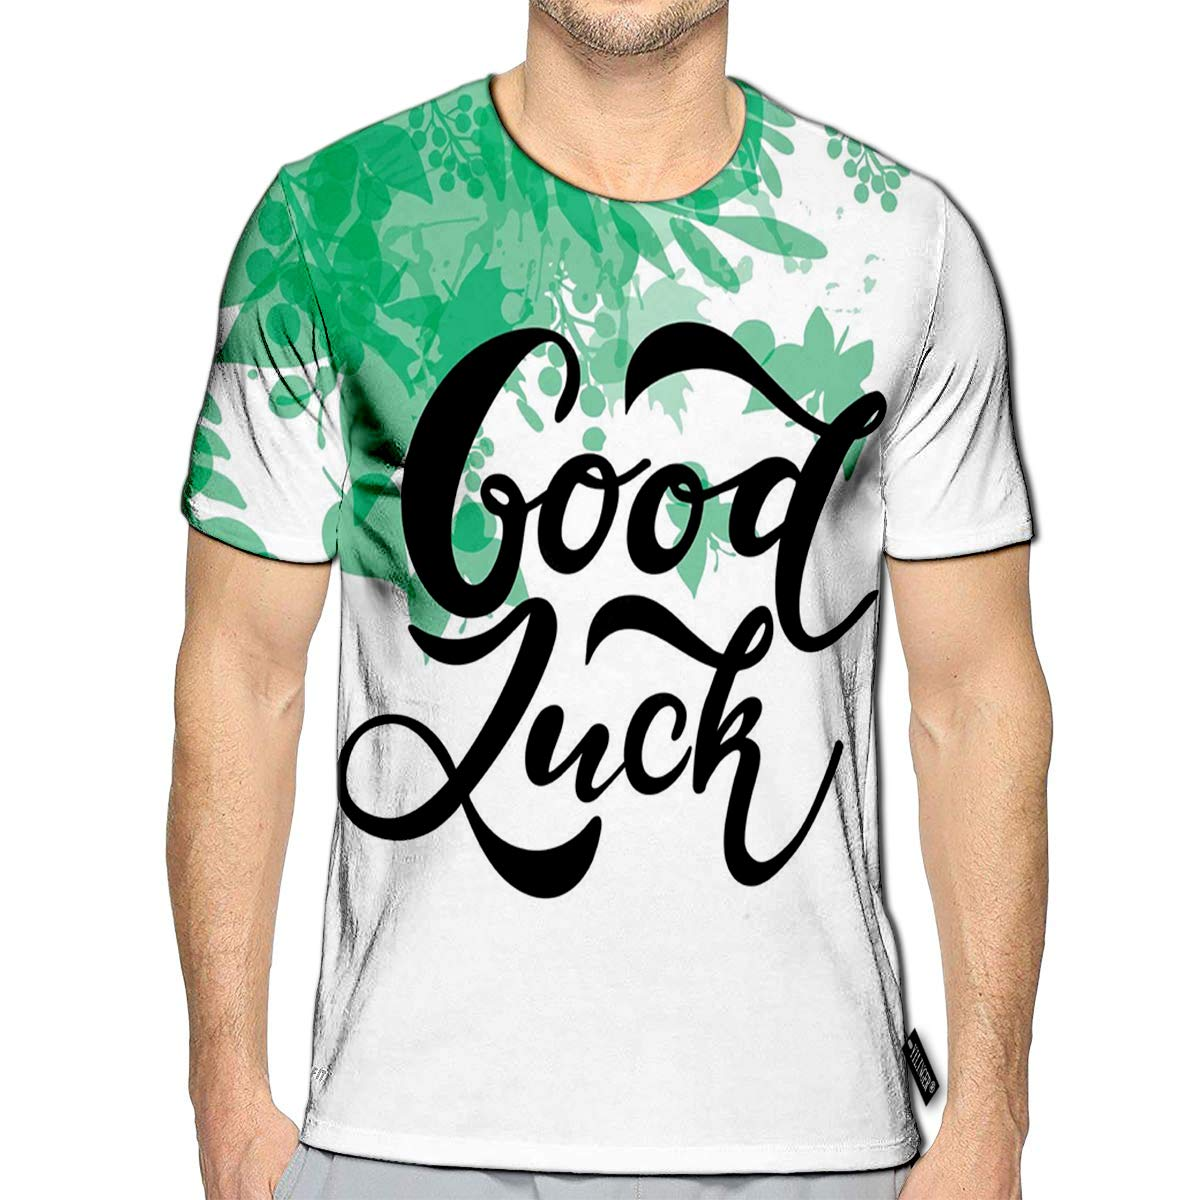 3D Printed T-Shirts Hand Sketched Good Luck Drawn Short Sleeve Tops Tees